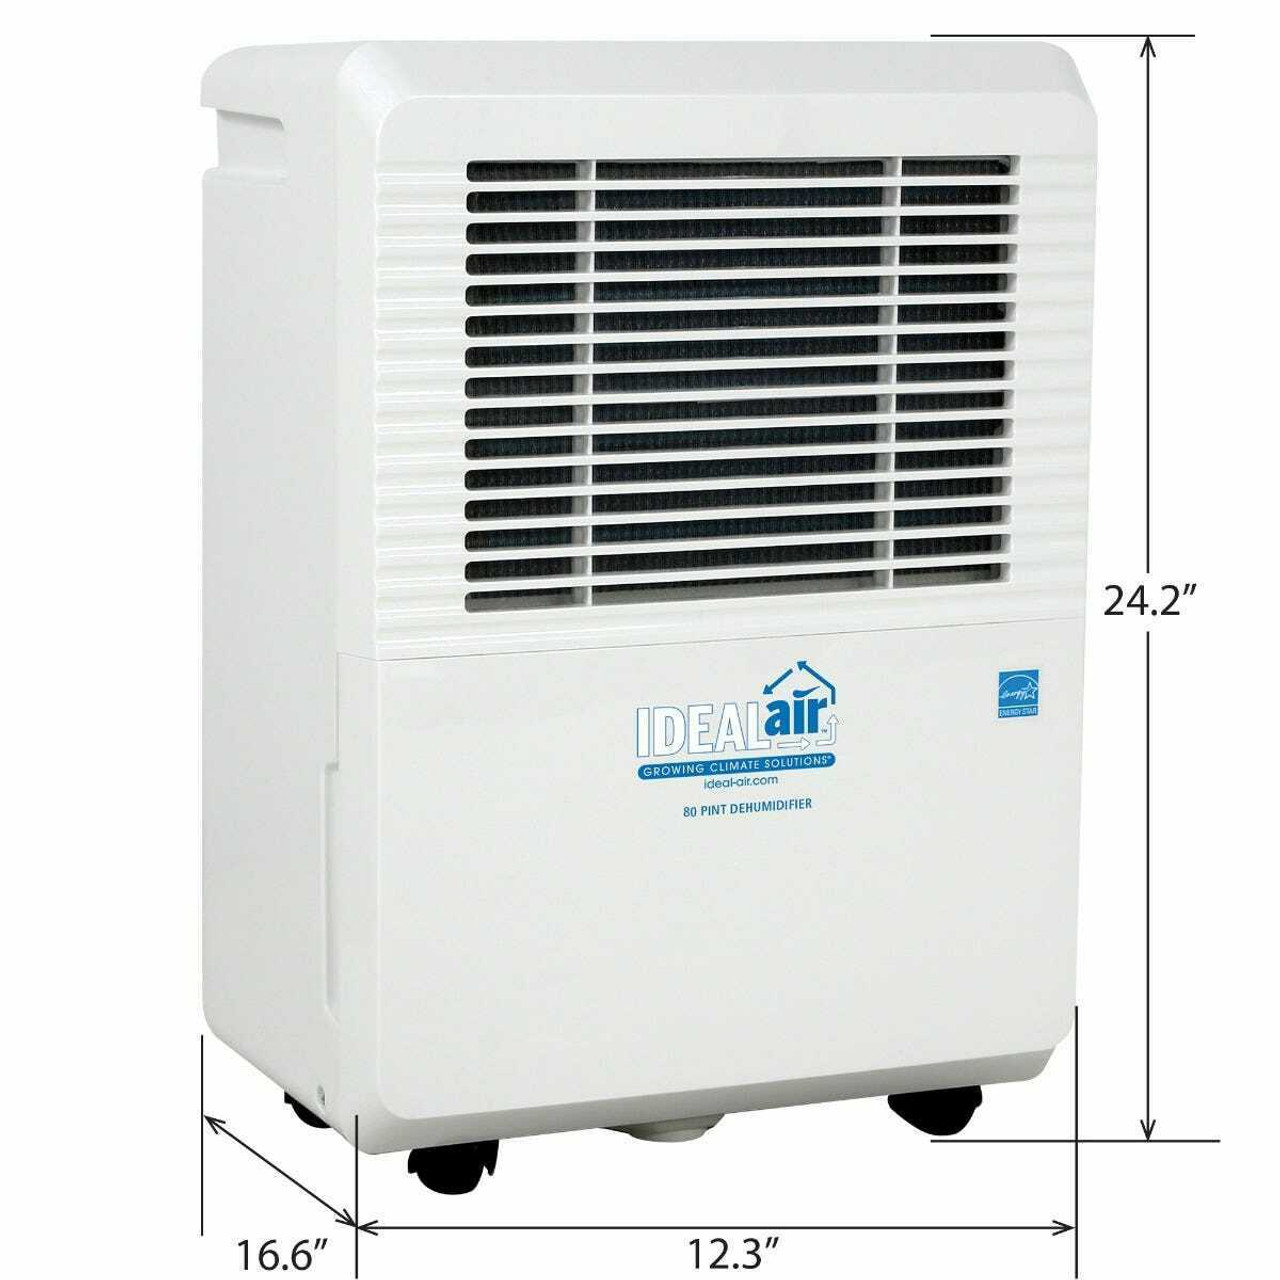 Ideal-Air Dehumidifier 50 Pint - Up to 80 Pints Per Day - 4